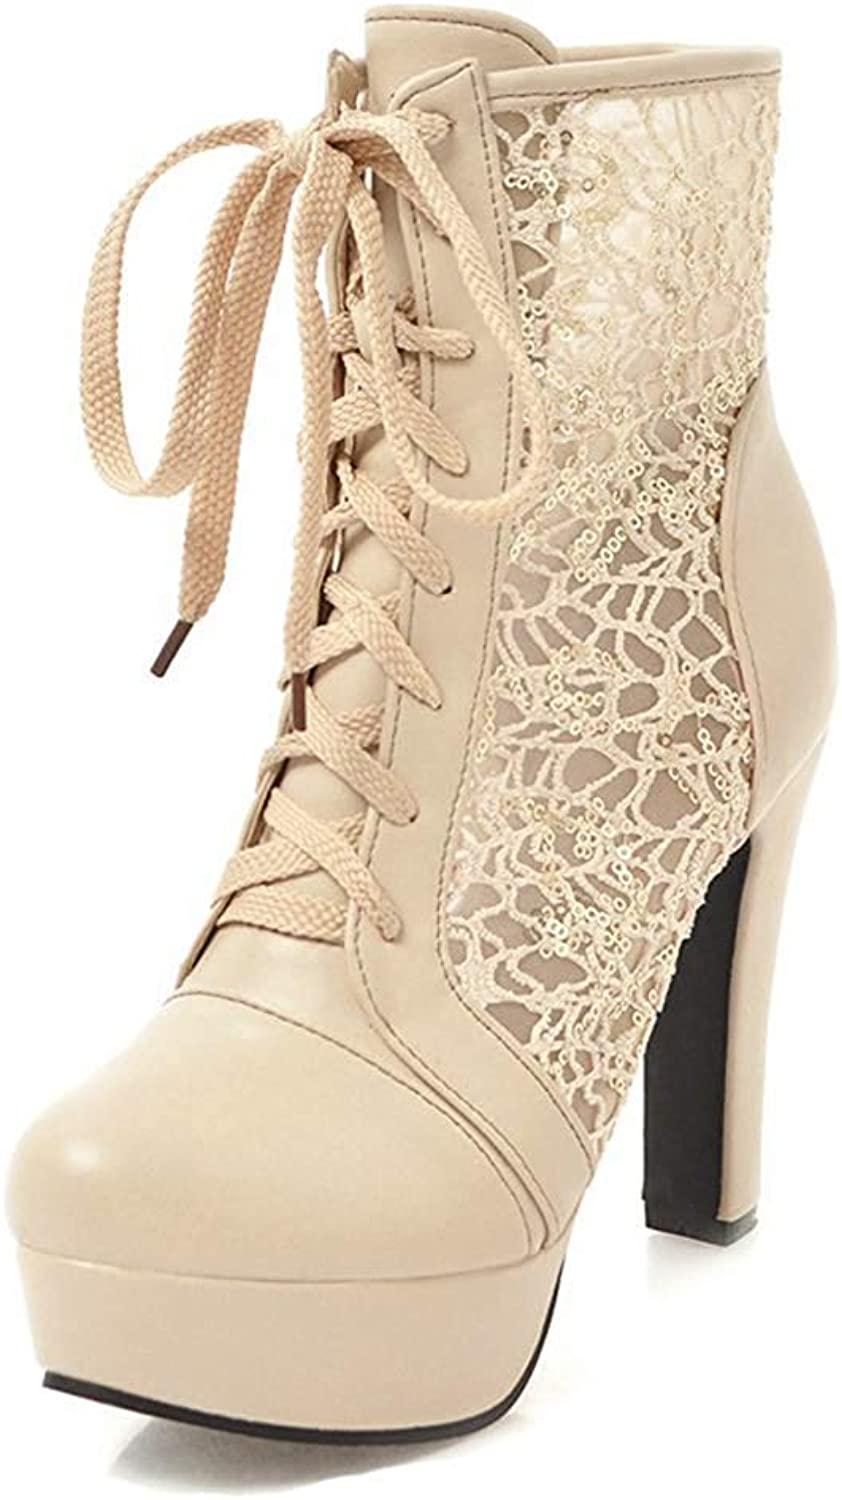 Unm Women's Elegant Laces Round Toe Dress Short Boots Lace Up Chunky High Heel Platform Ankle Booties